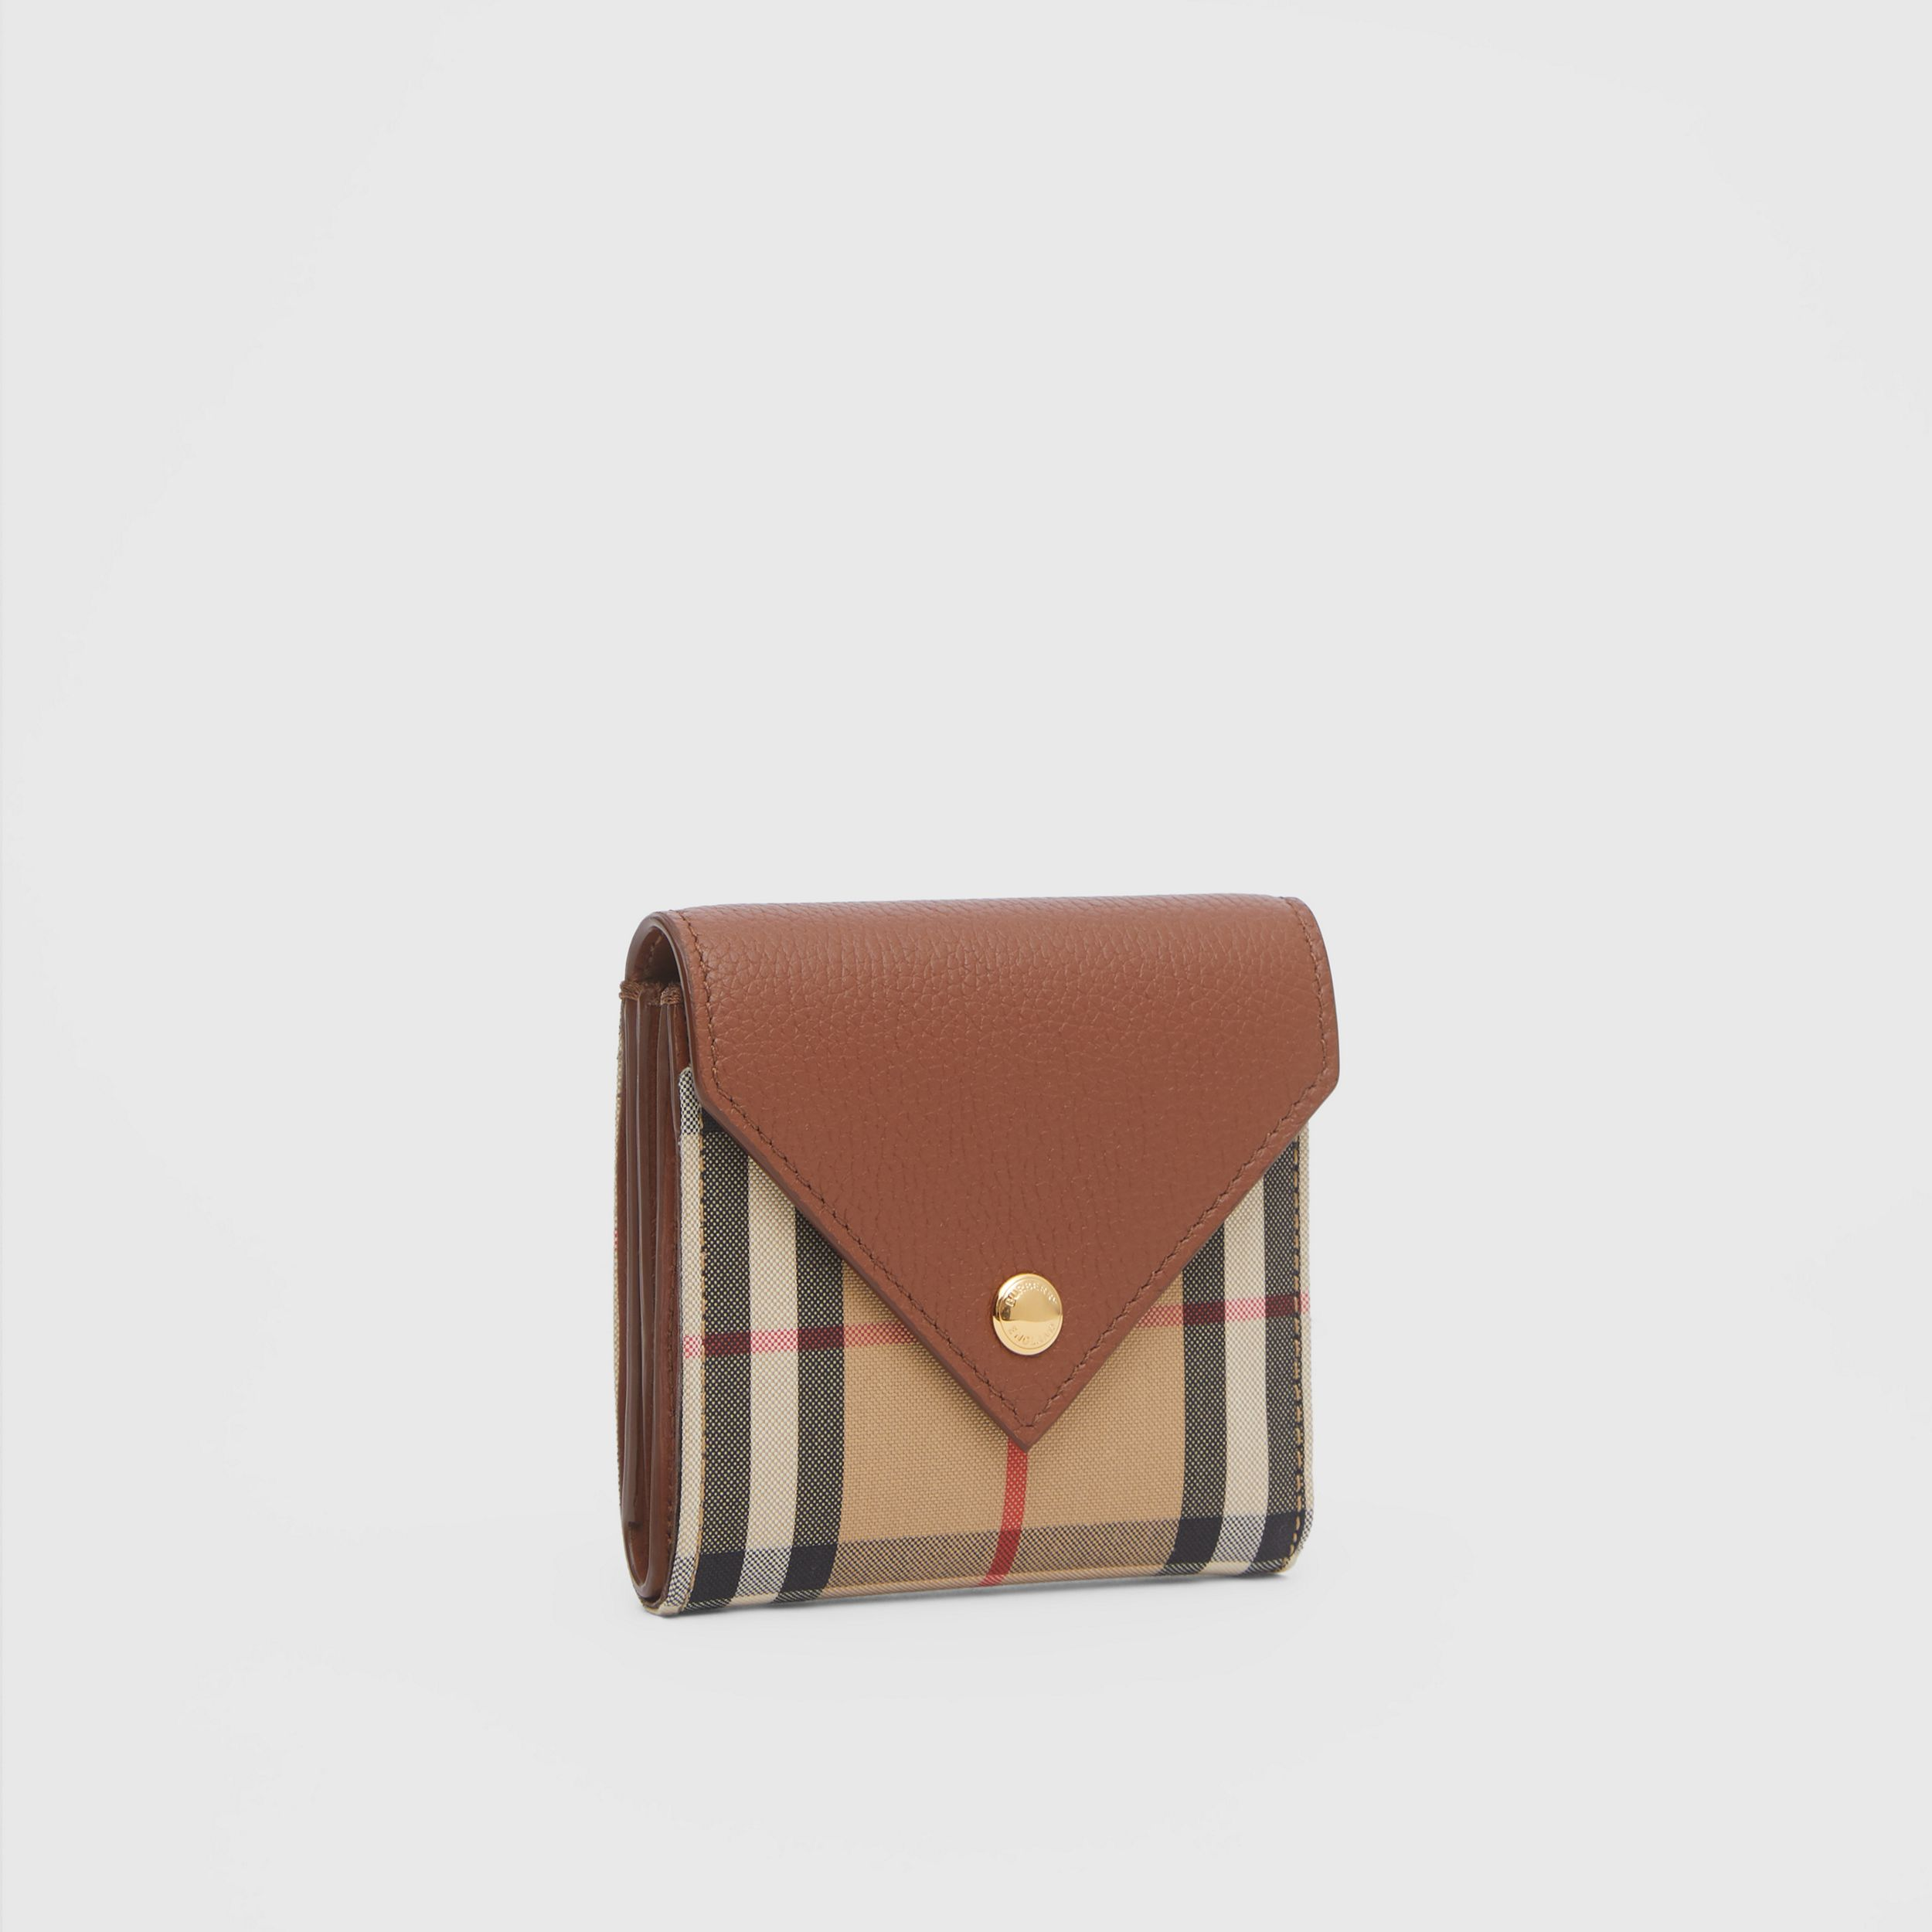 Vintage Check and Grainy Leather Folding Wallet in Tan - Women | Burberry Hong Kong S.A.R. - 4